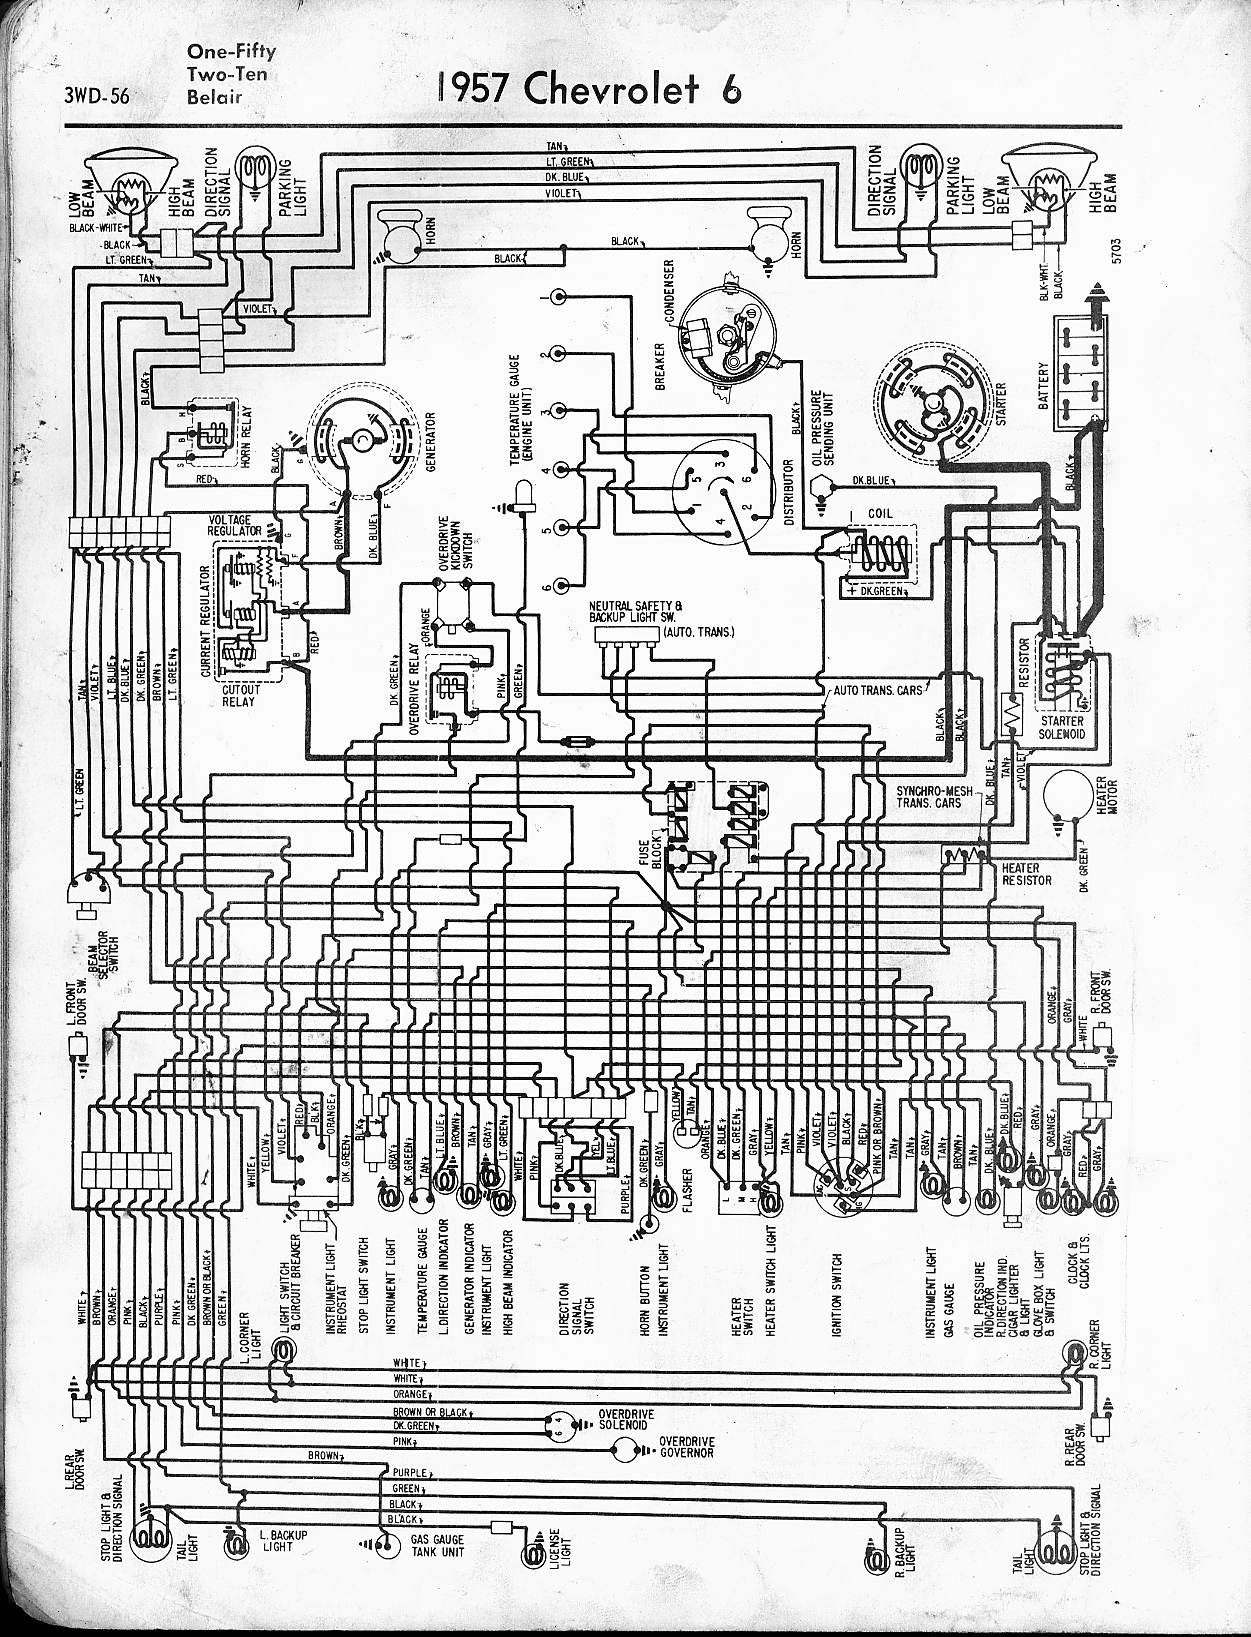 hight resolution of painless wiring for 1957 chevy wiring diagram used 1957 chevy truck headlight switch wiring diagram 1957 chevy truck wiring